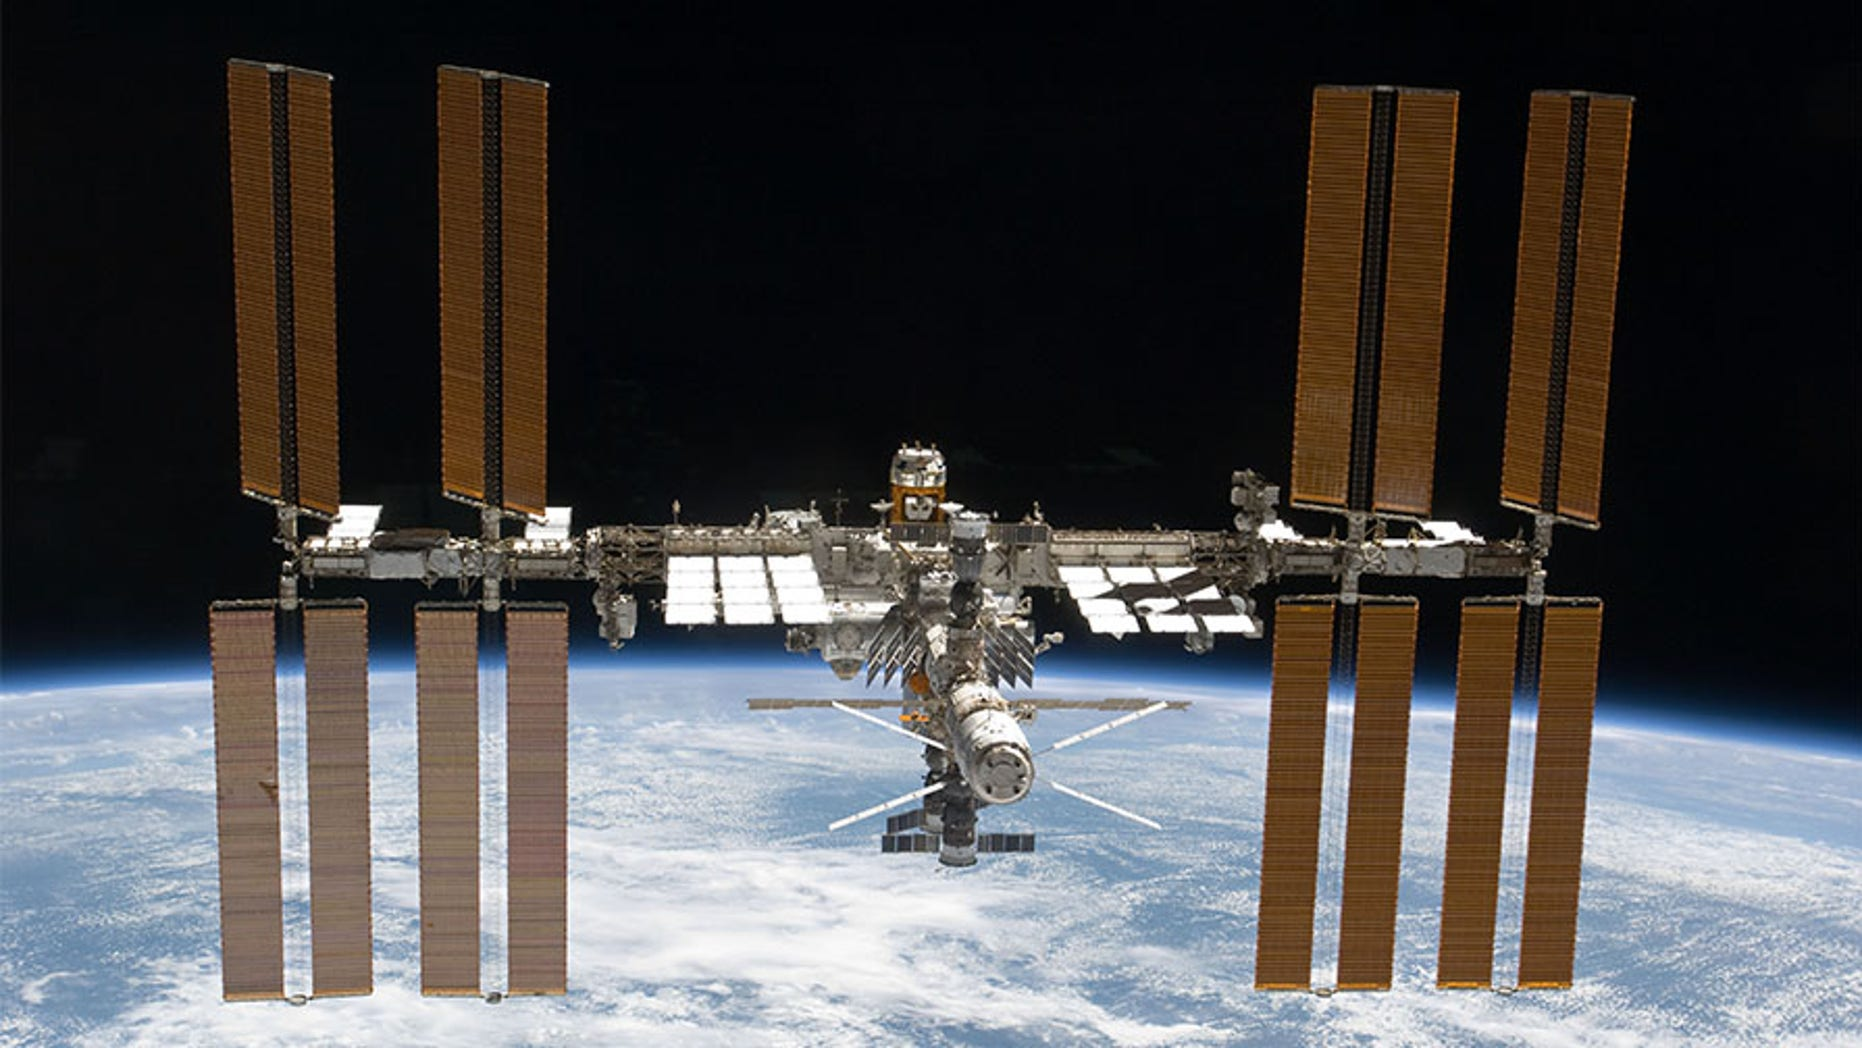 NASA astronauts are under attack in space - by herpes